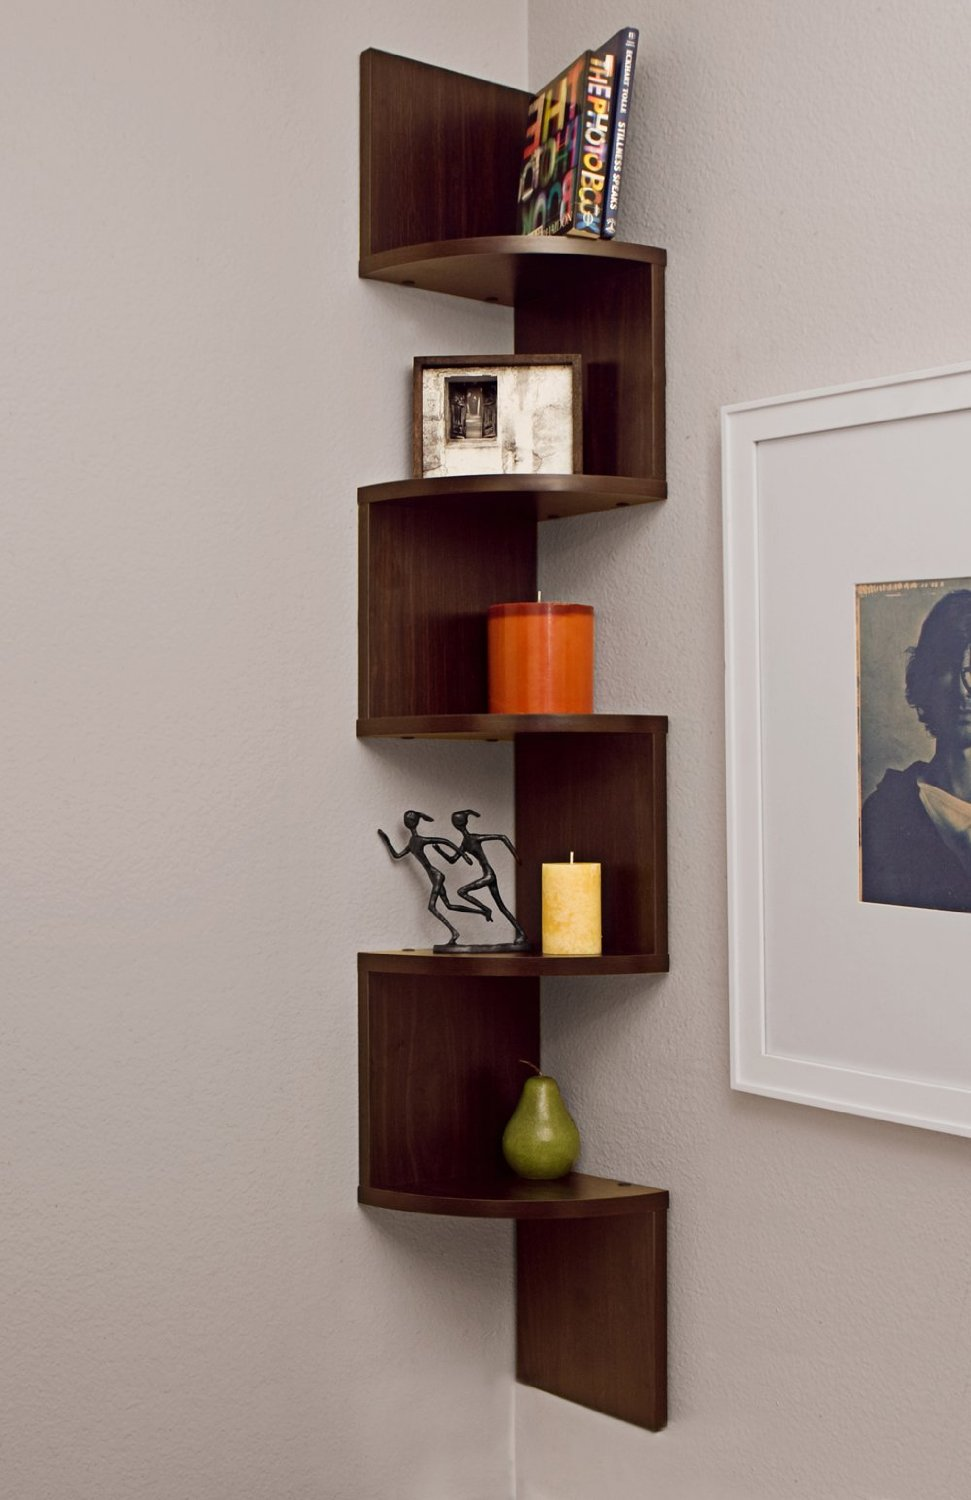 Bookshelves For Small Spaces And Apartments